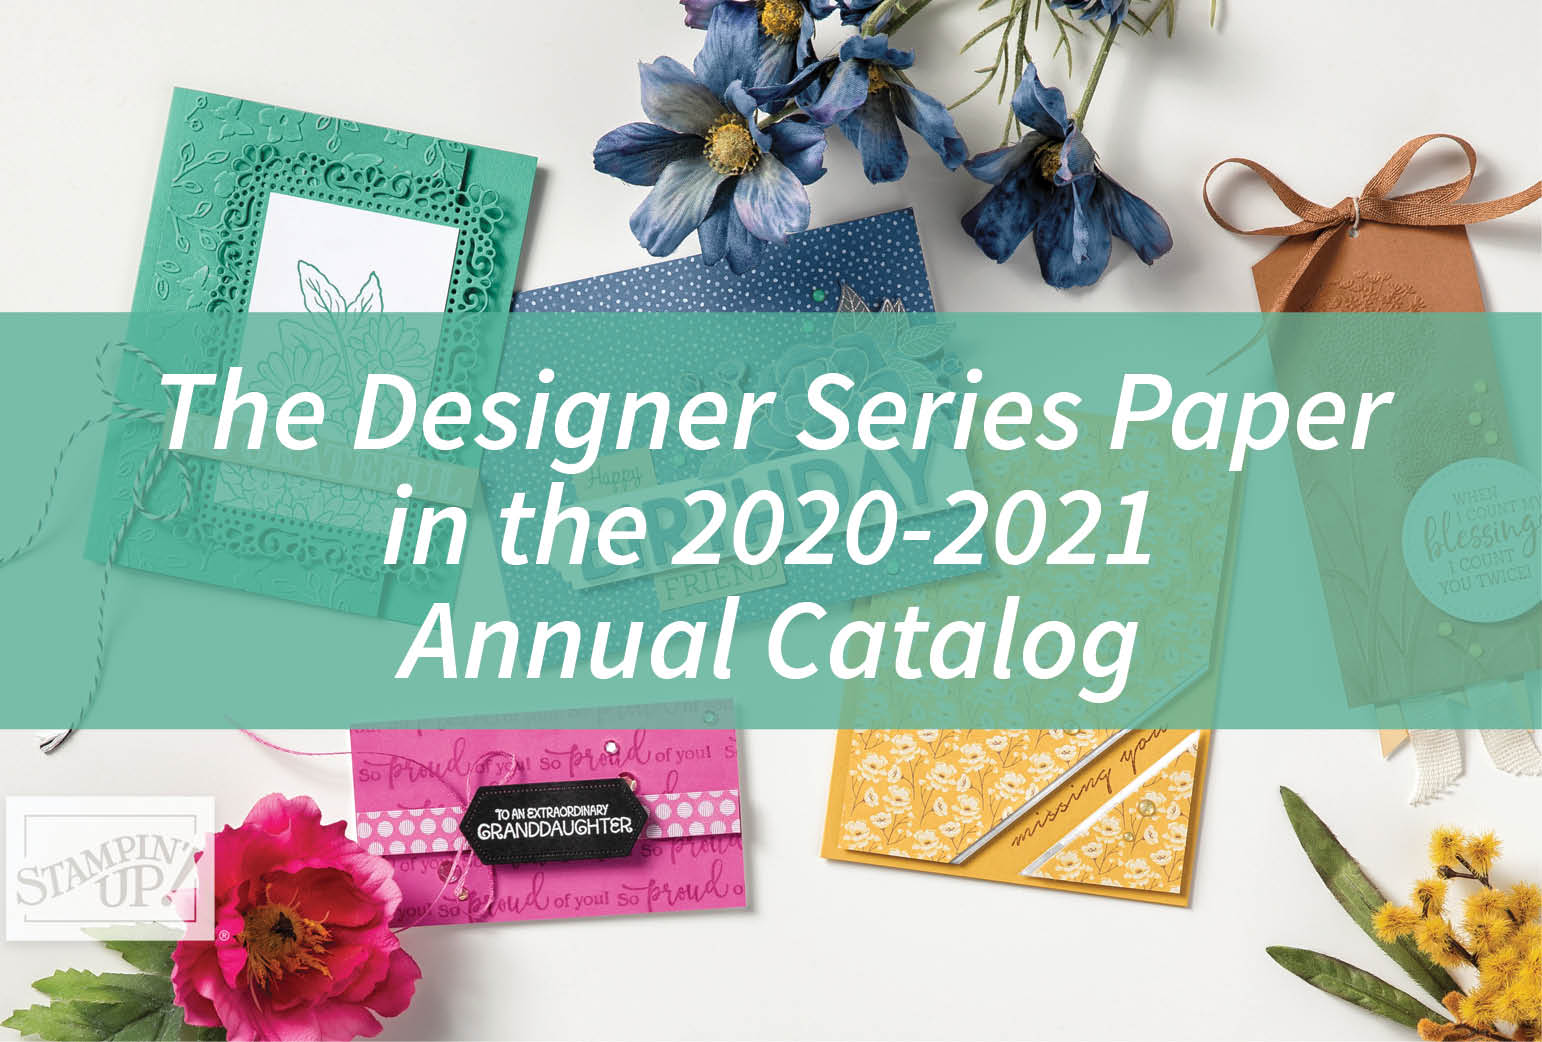 The Designer Series Paper in the 2020-2021 Annual Catalog